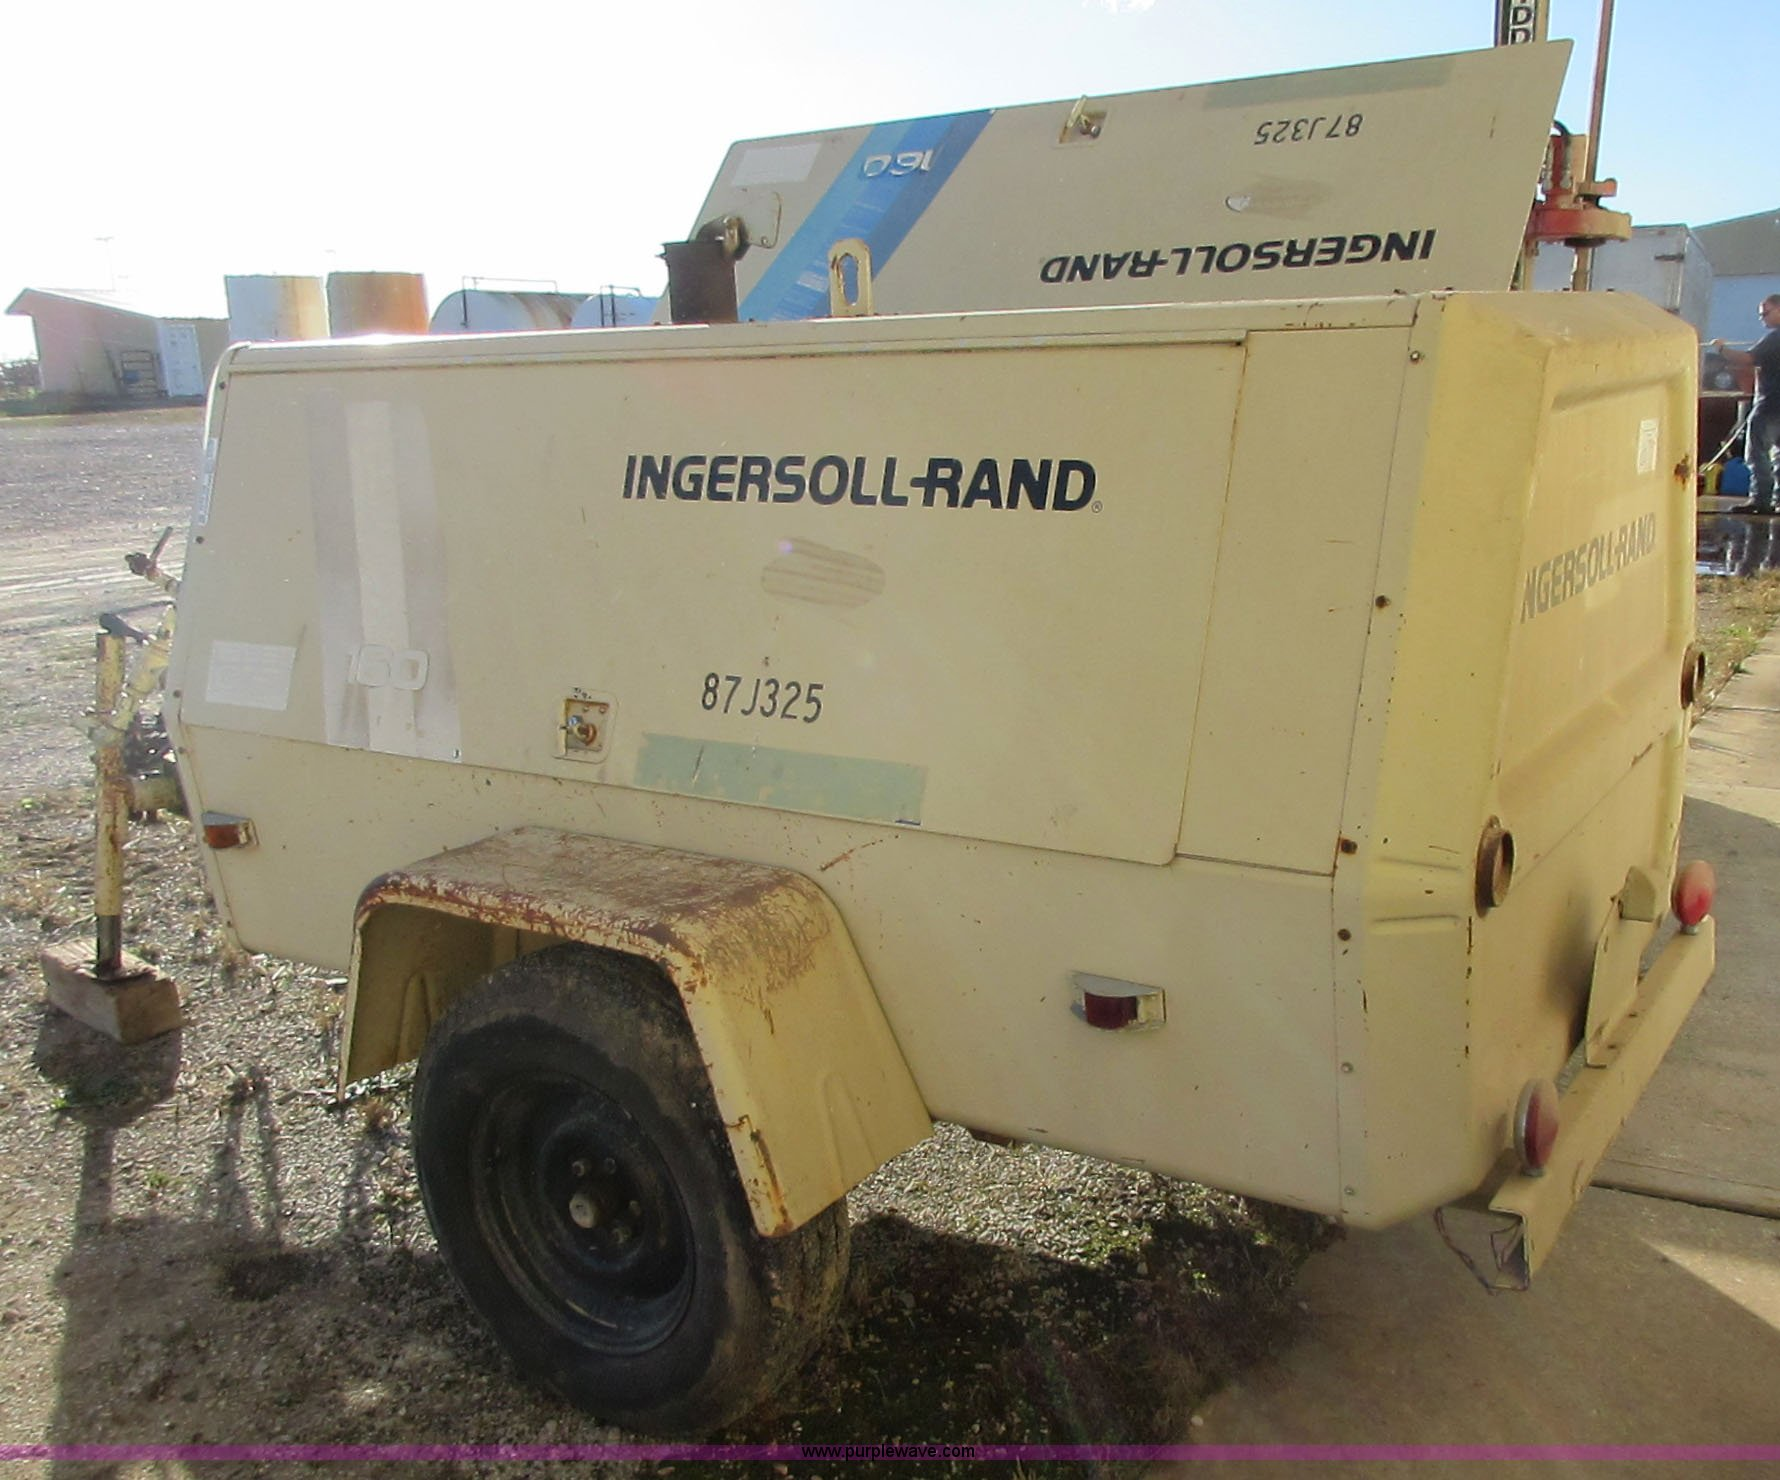 ... Ingersoll Rand 160 air compressor Full size in new window ...